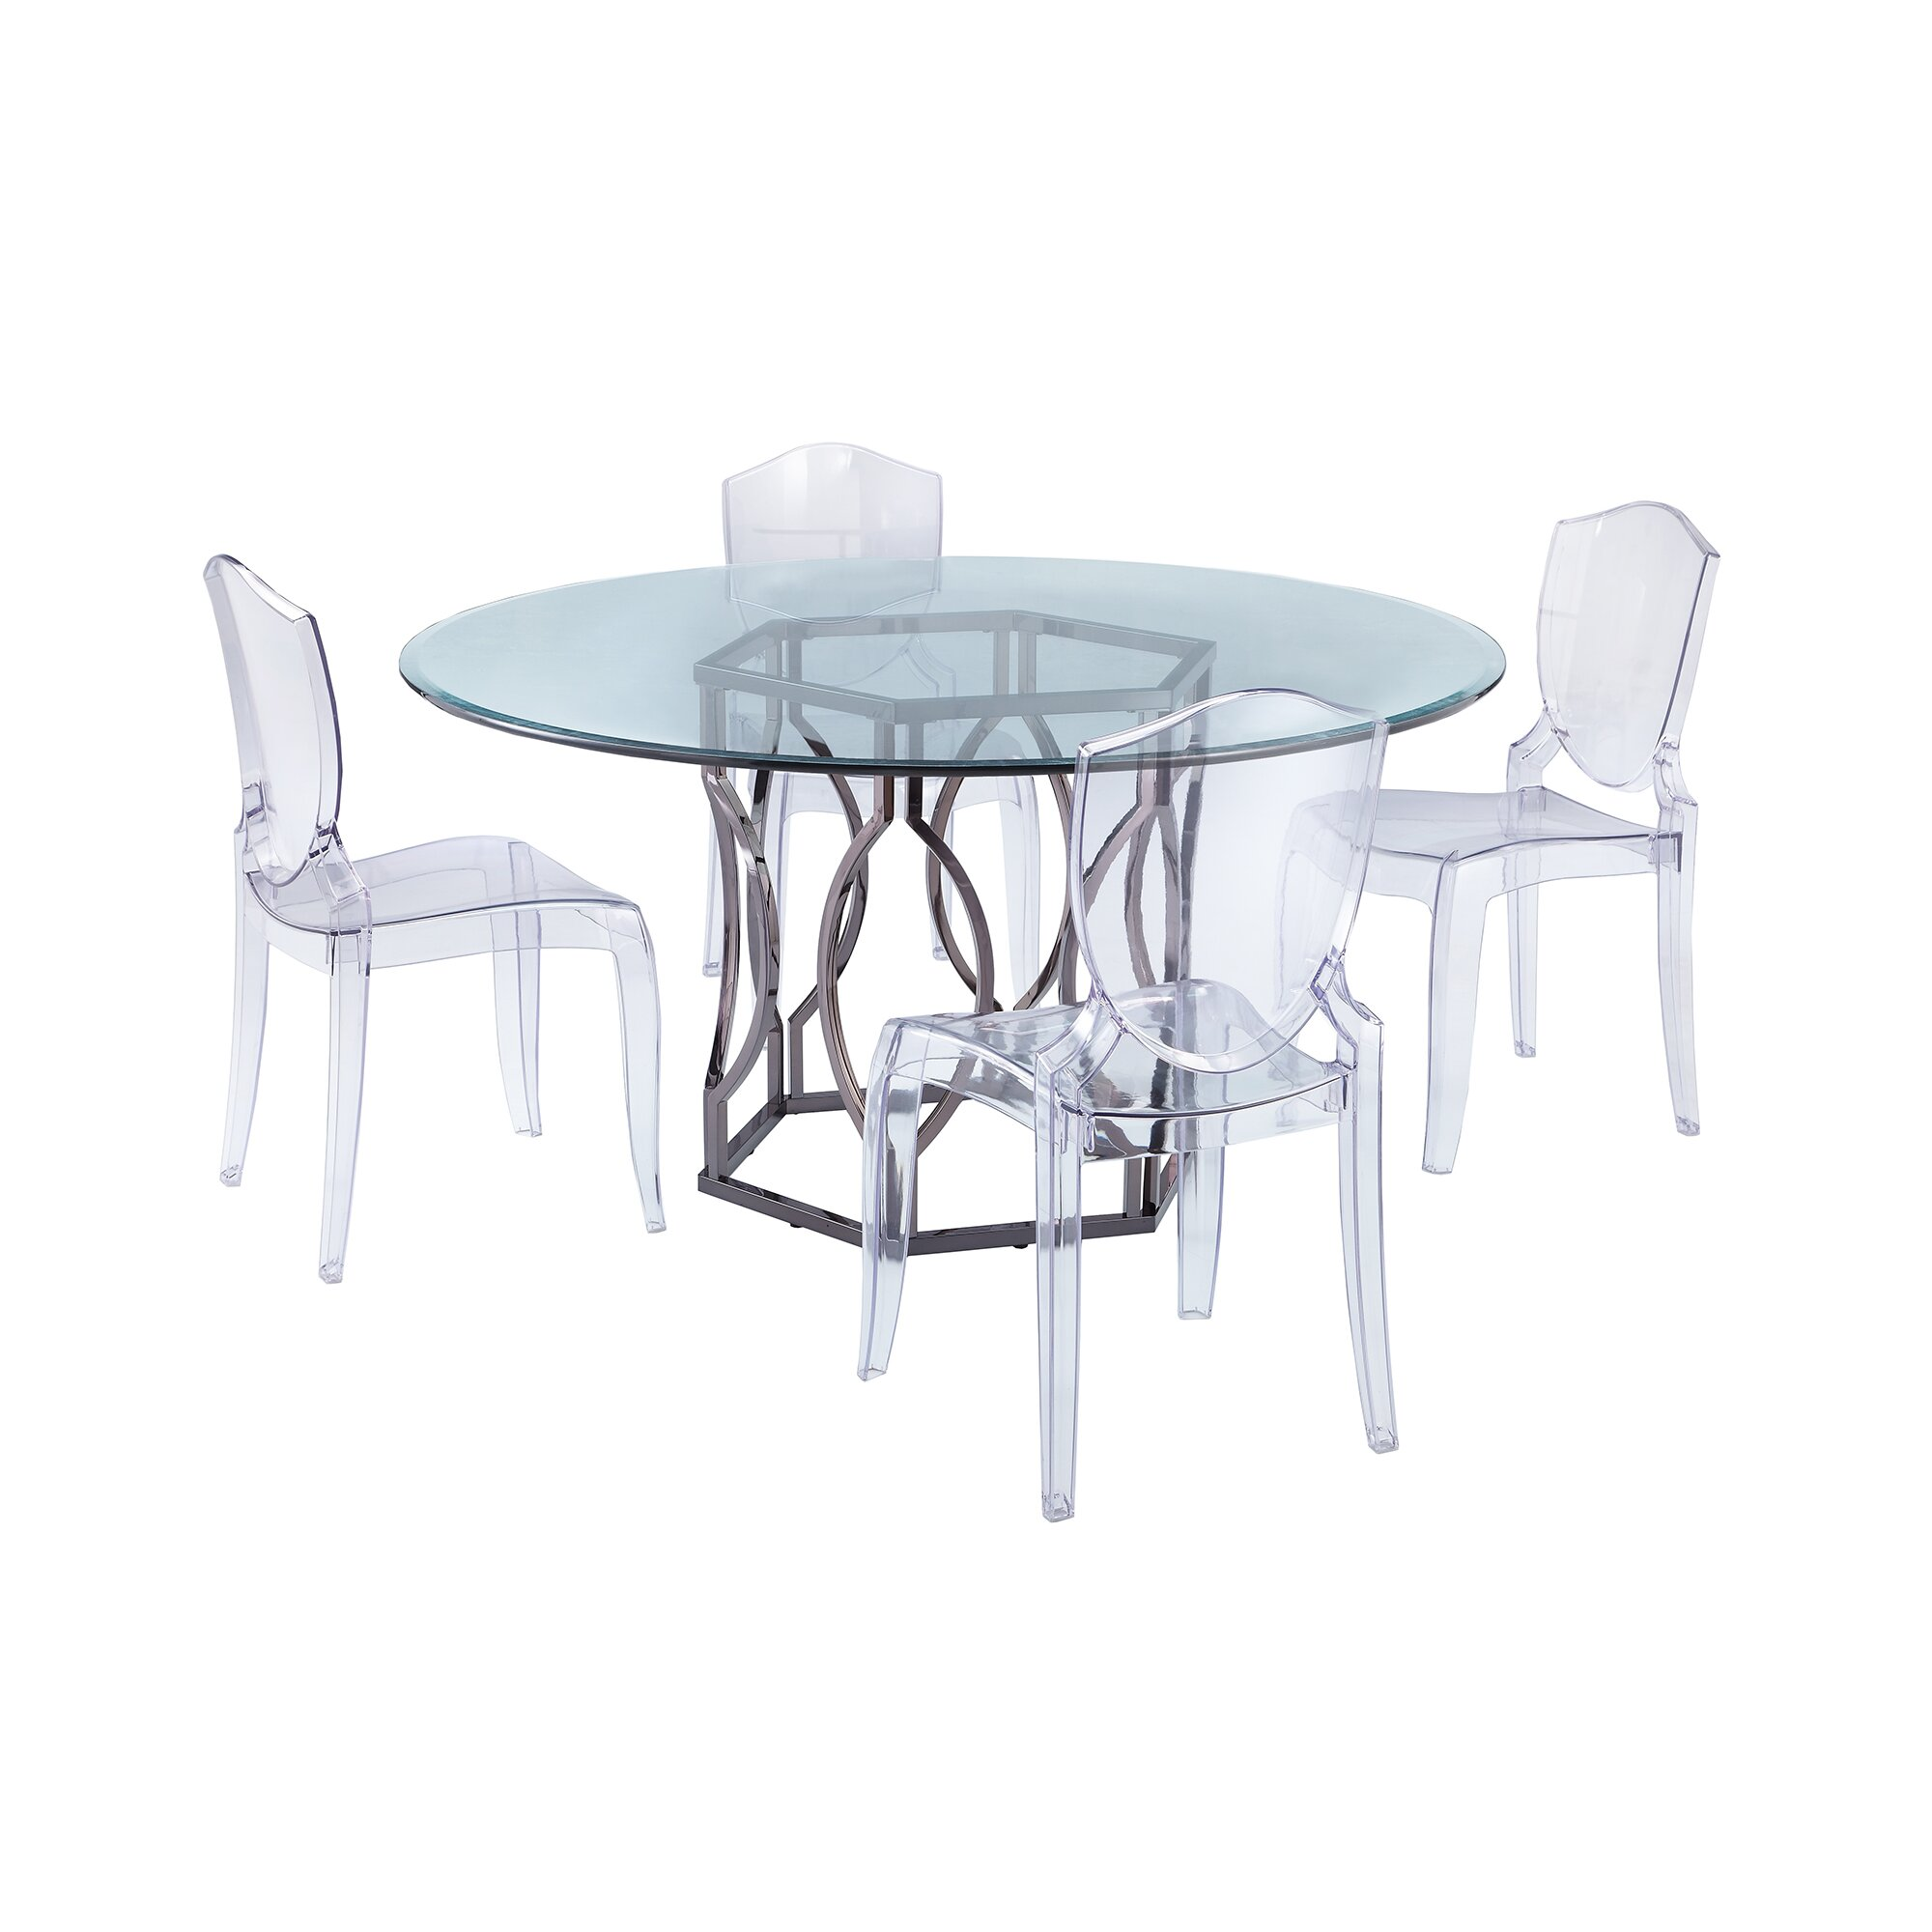 Round Glass Kitchen Tables: Viggo Round Glass Dining Table